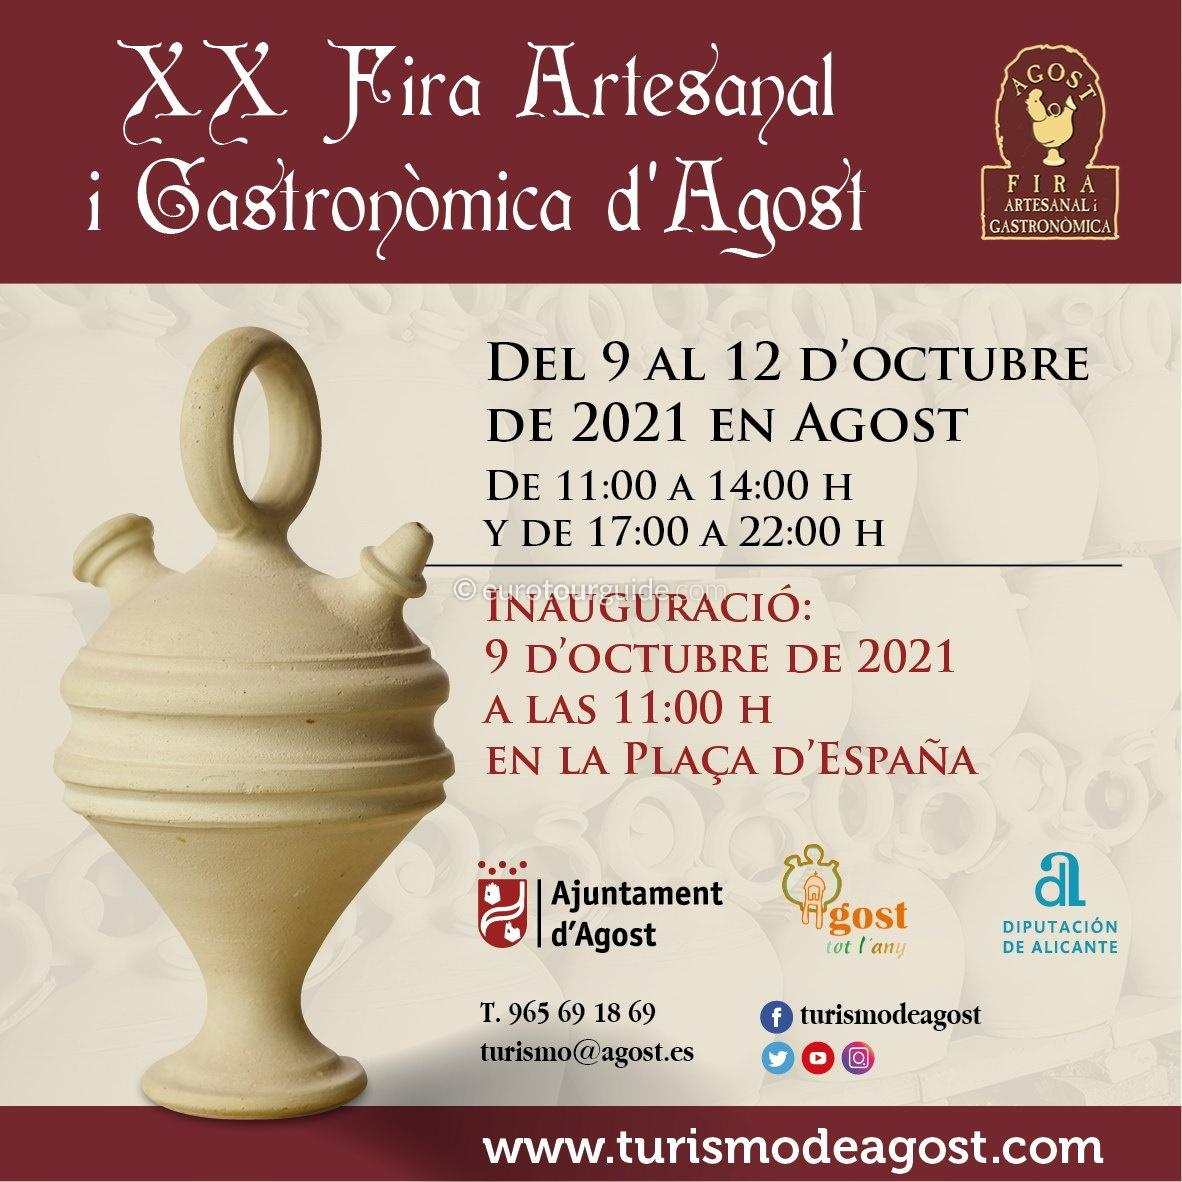 Agost 16th Craft and Gastronomic Fair 9th-12th October 2021